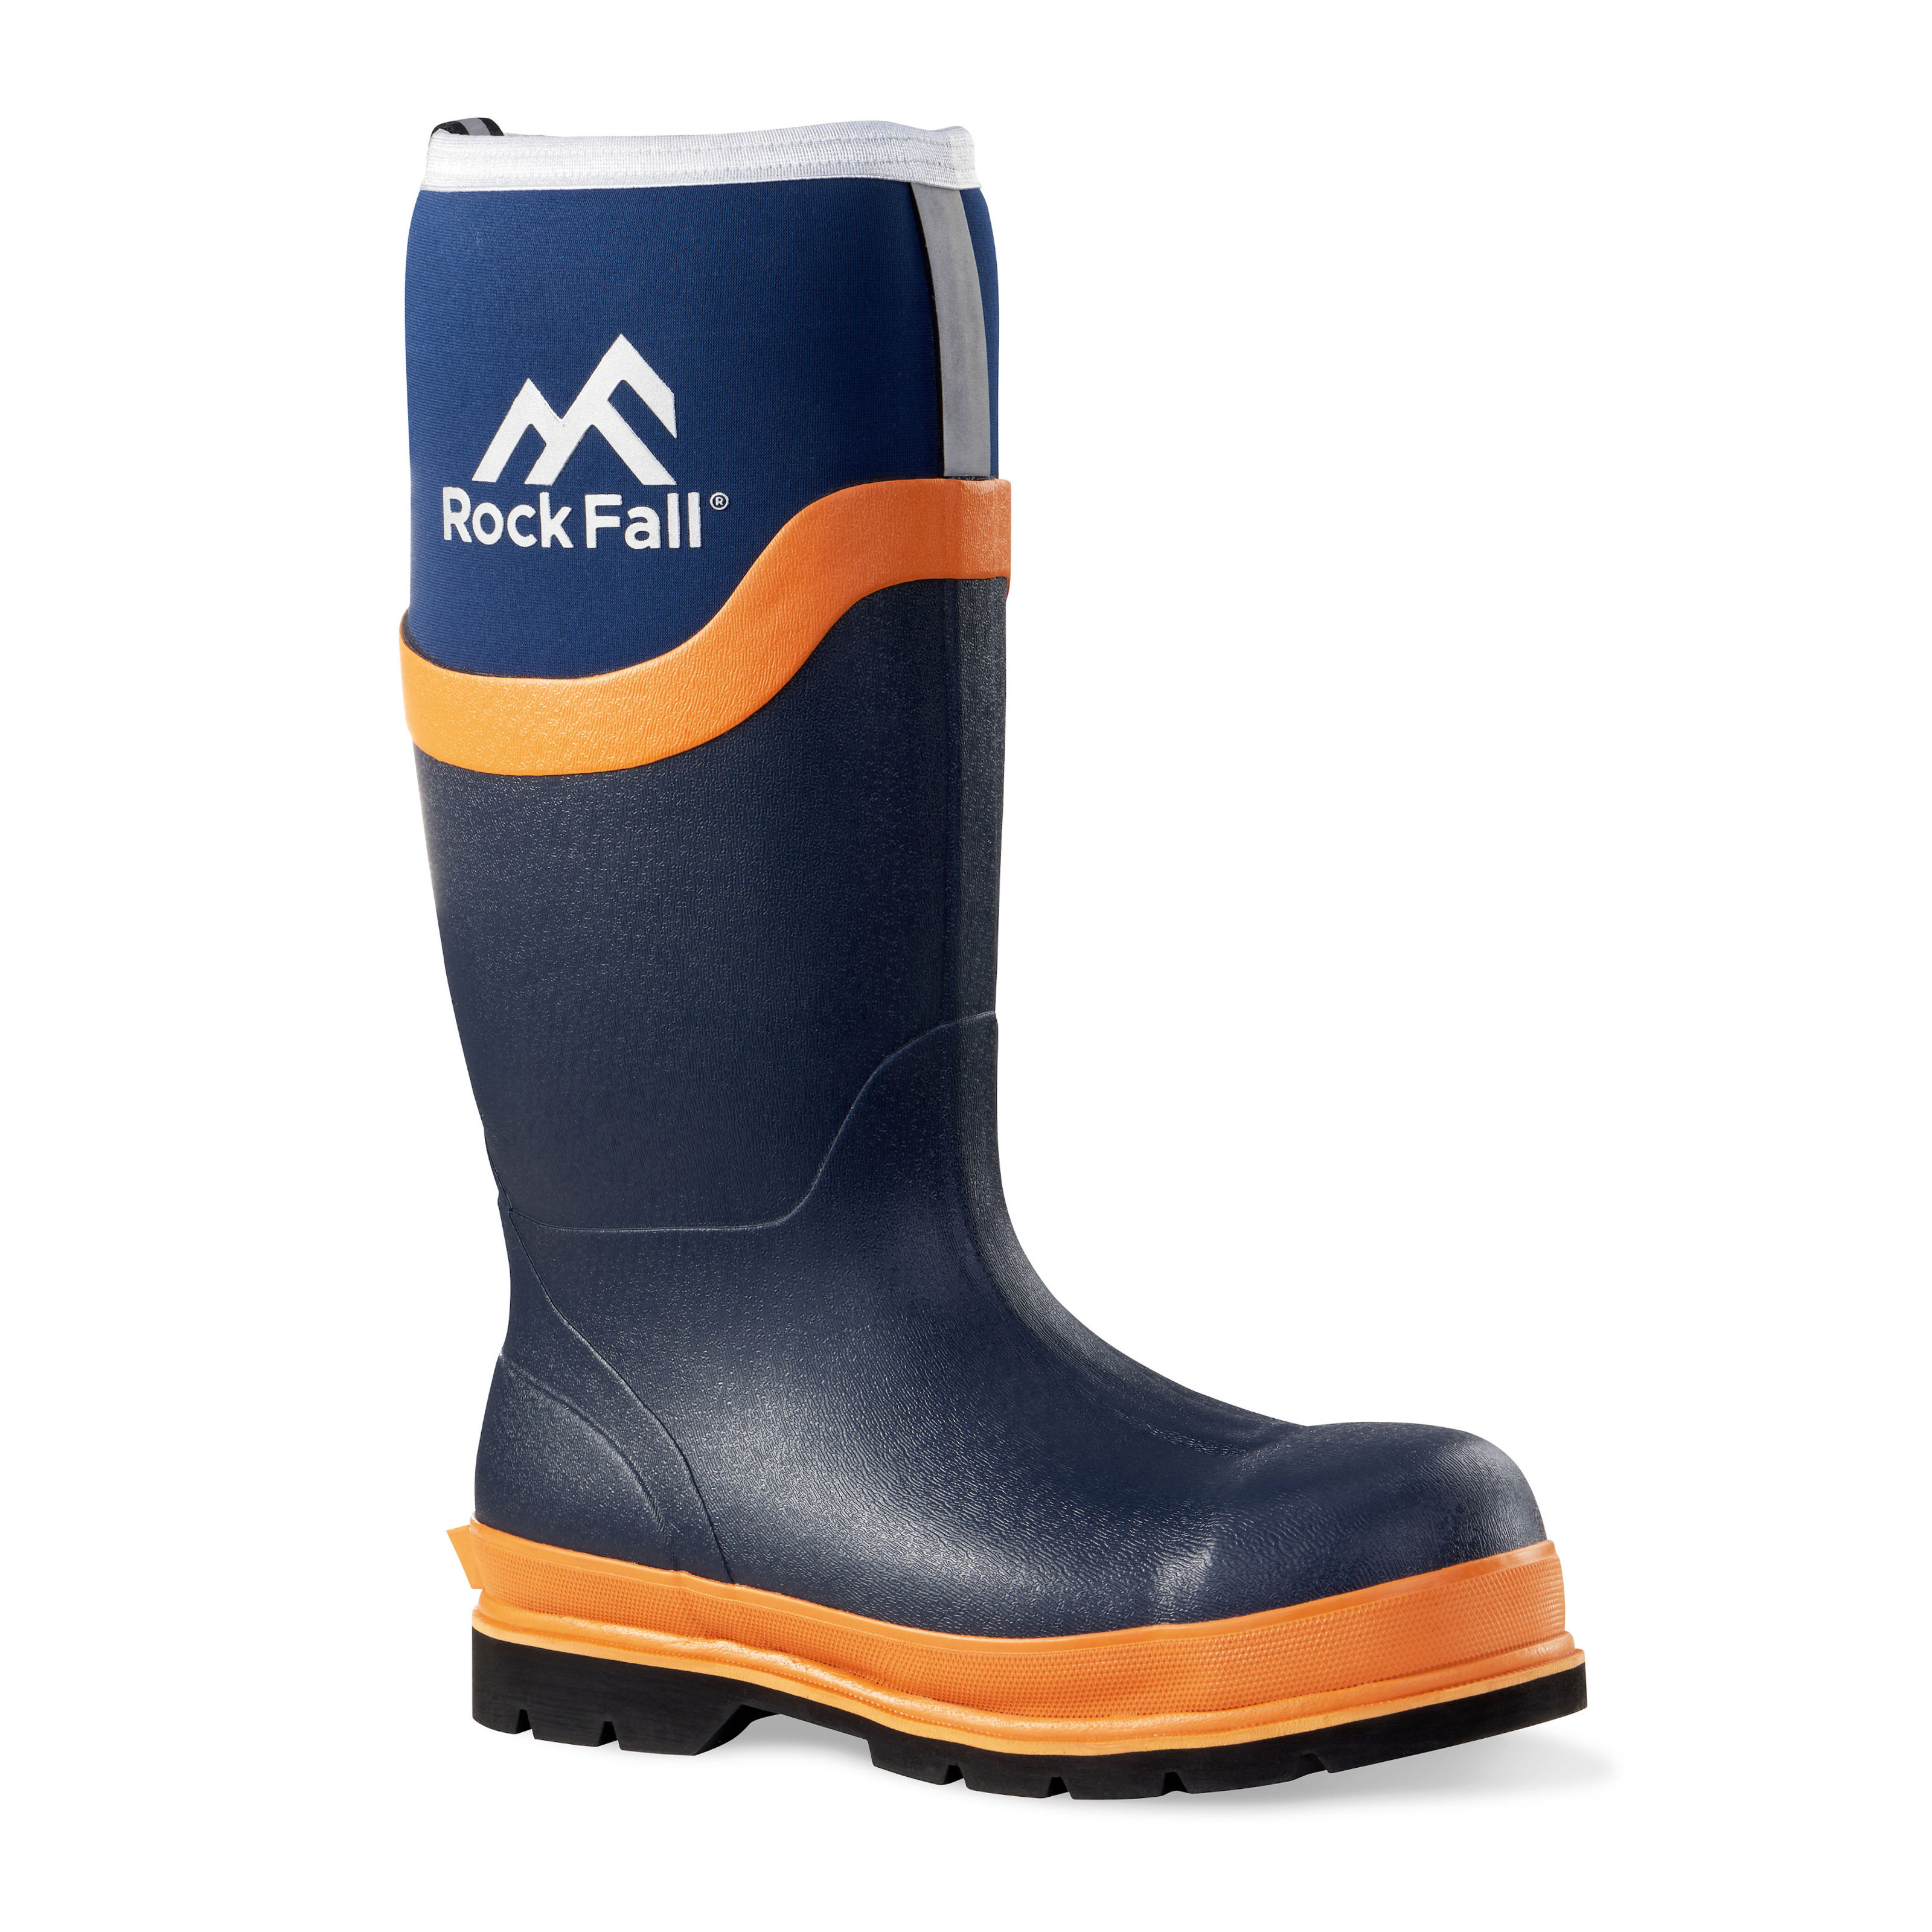 Rock Fall Silt Safety Wellington Boots